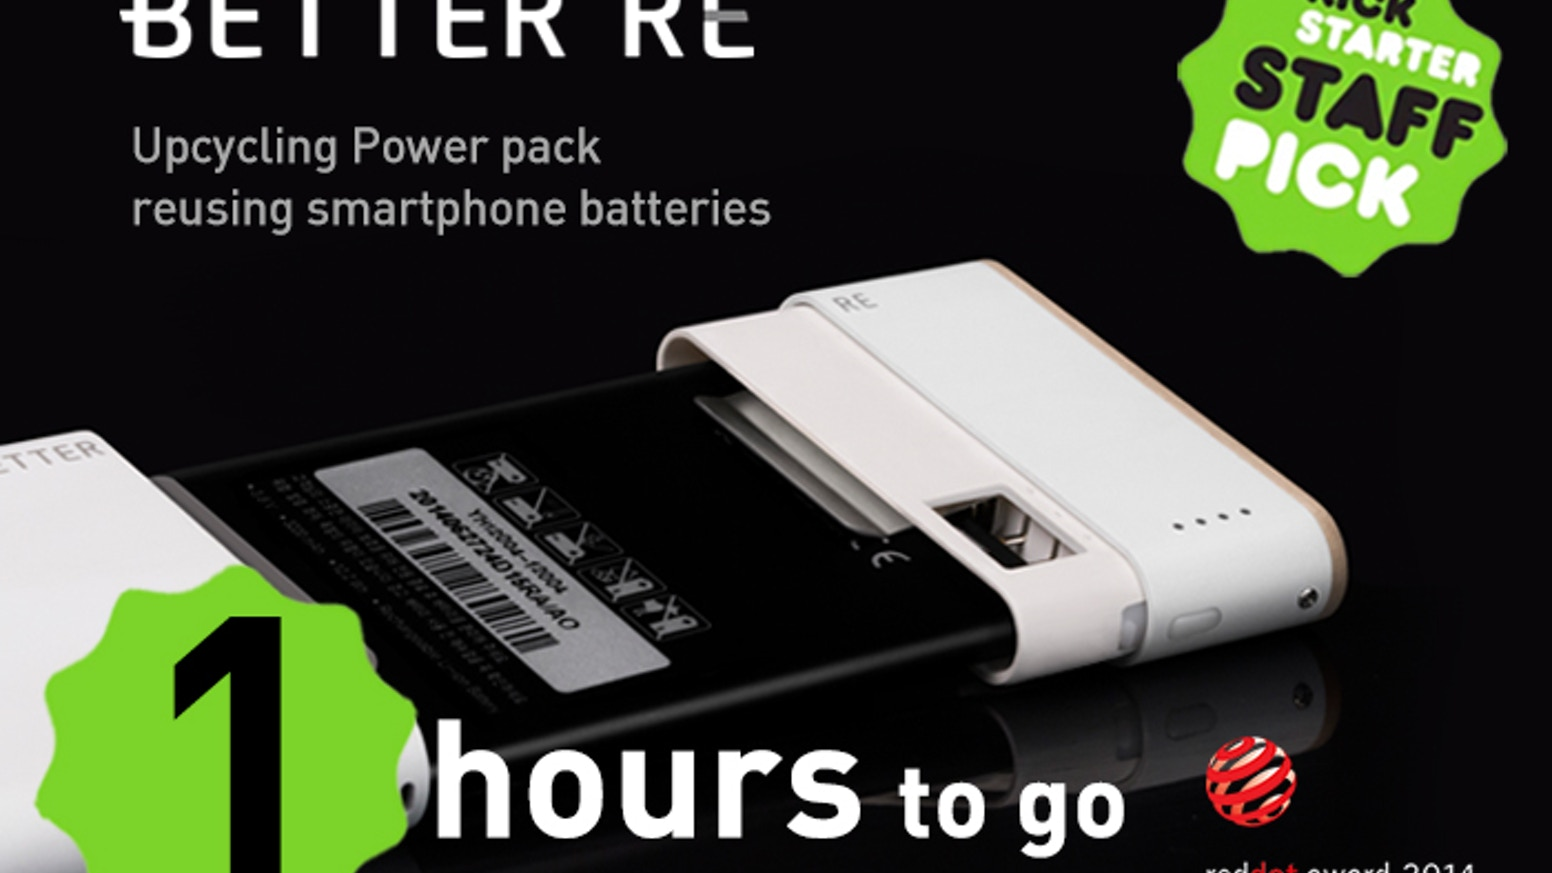 BETTER RE - an Upcycling Power Pack to 'BETTER REuse' your old smartphone batteries, with infinite lifespan and expandable capacity.